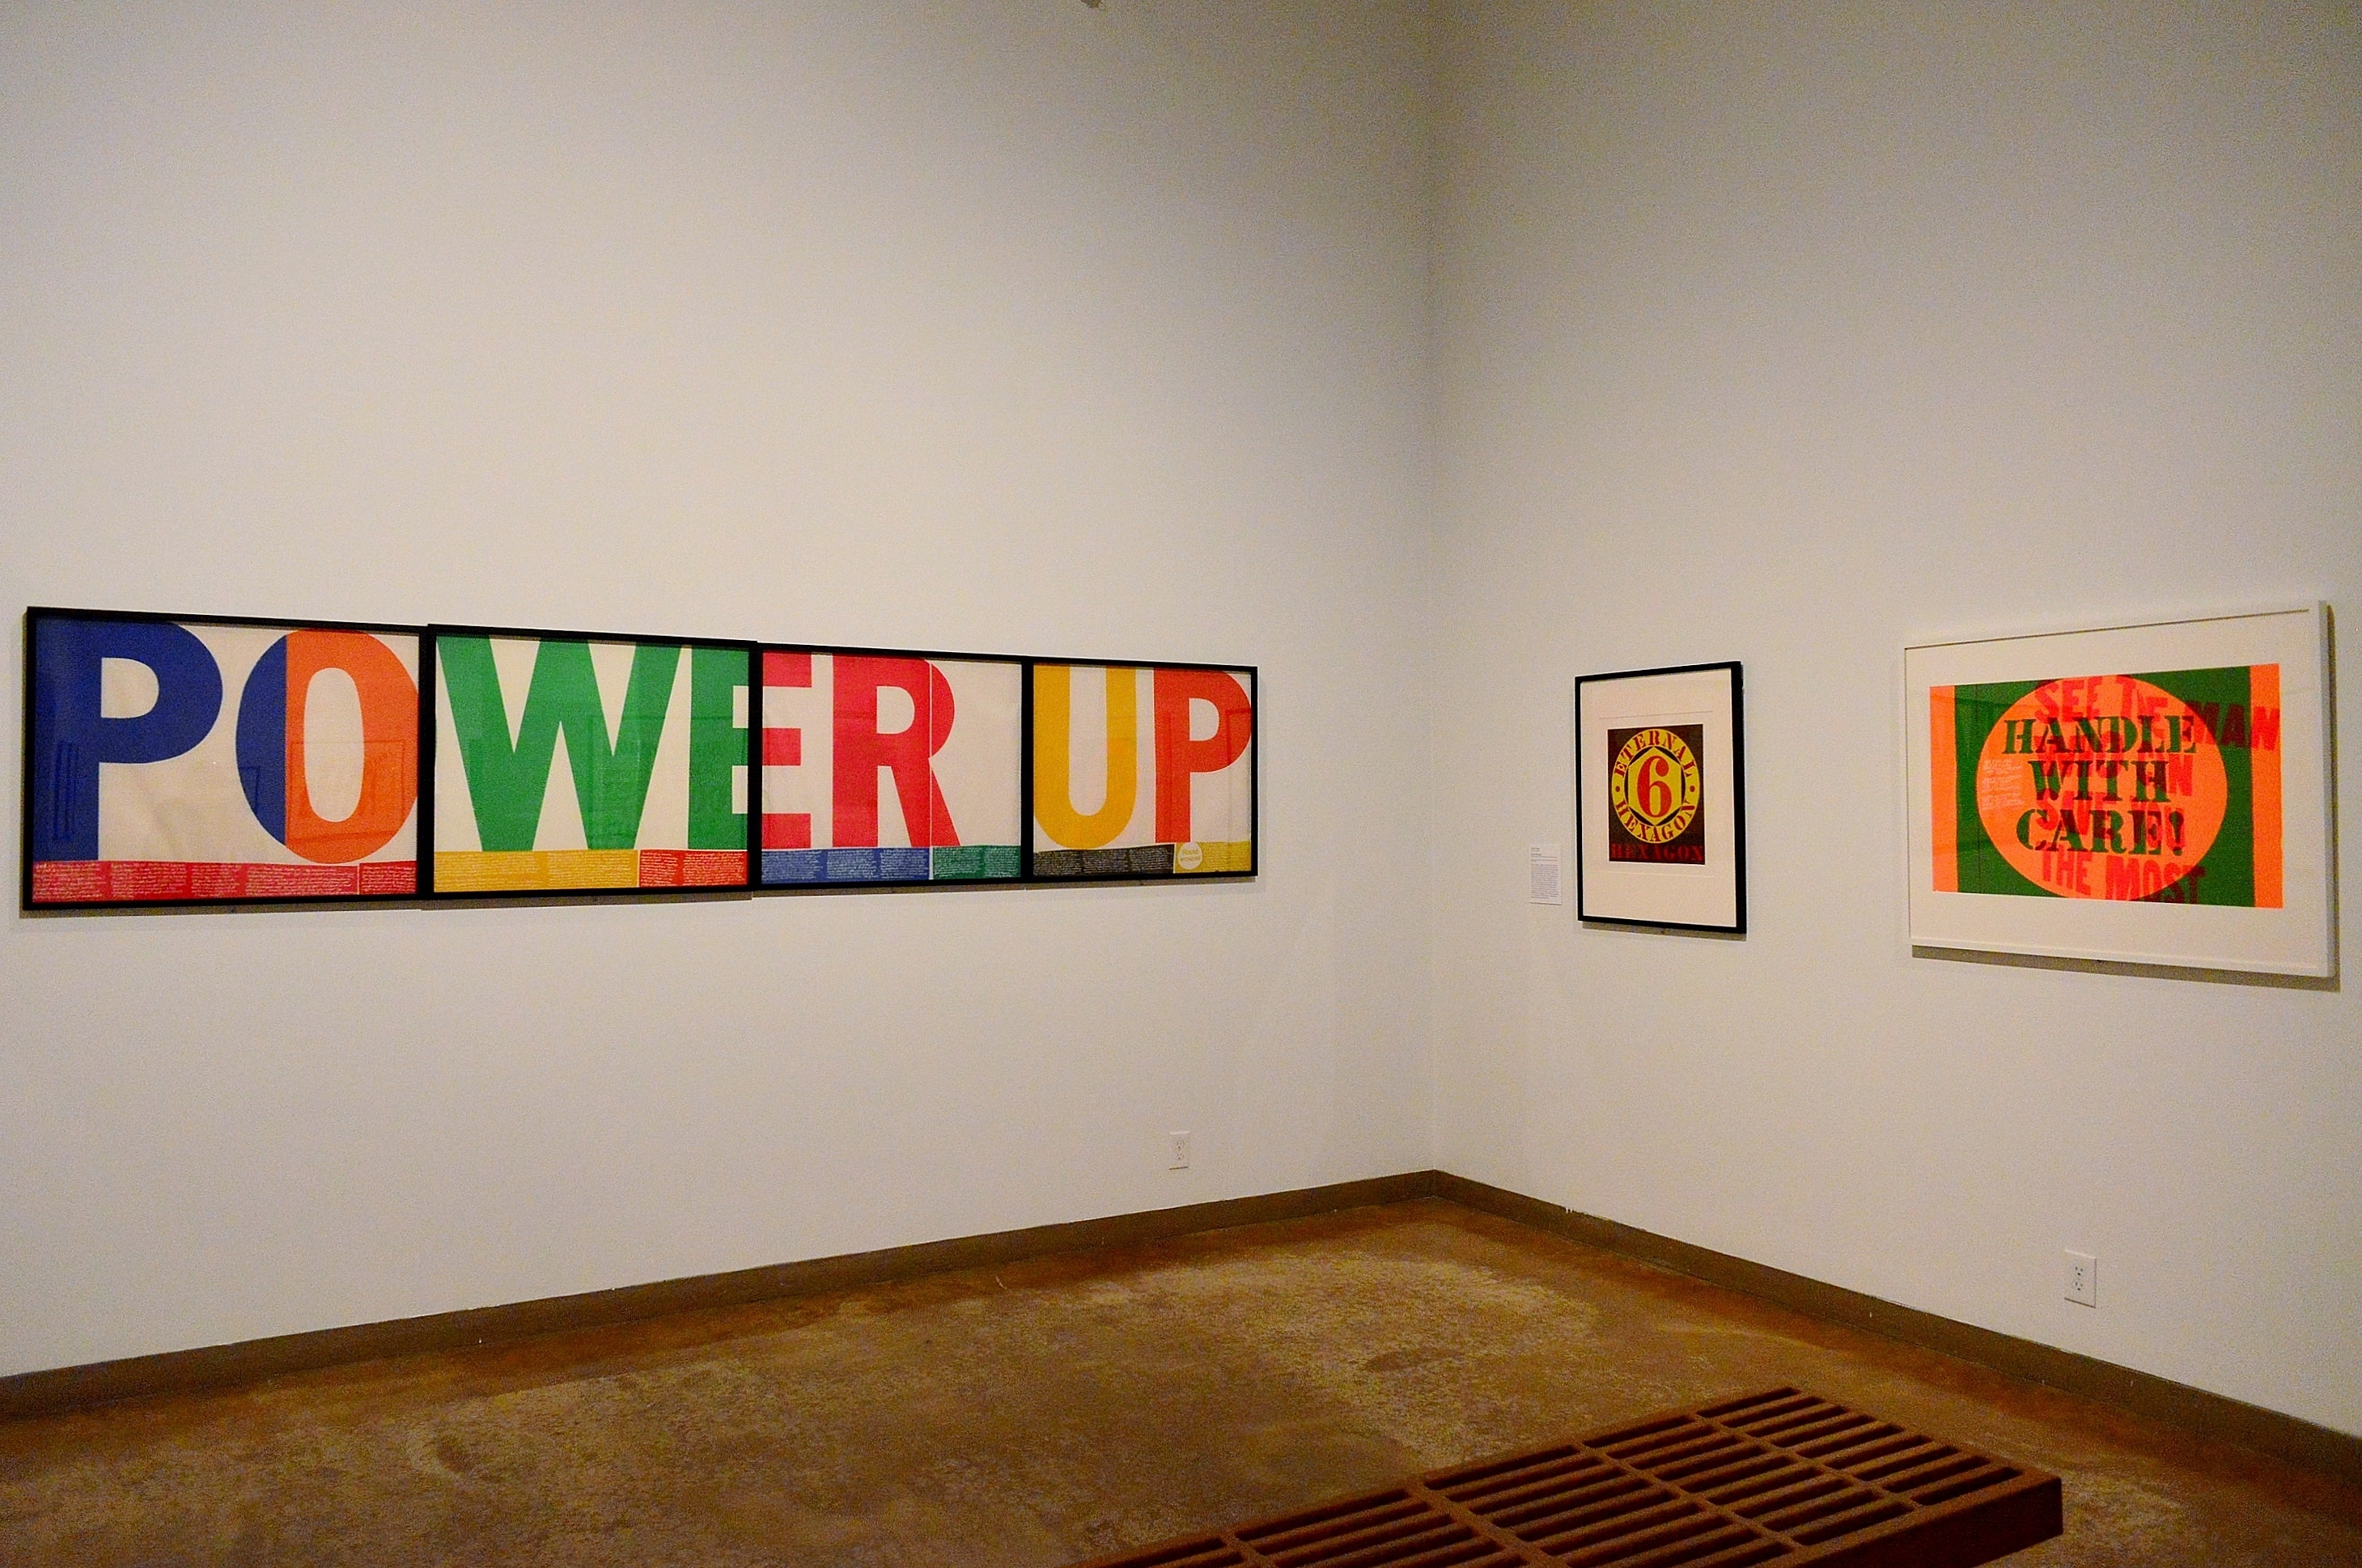 External Hexagon by Robert Indiana (c) flanked by two Corita Kent works power up (r) and handle with care (l).